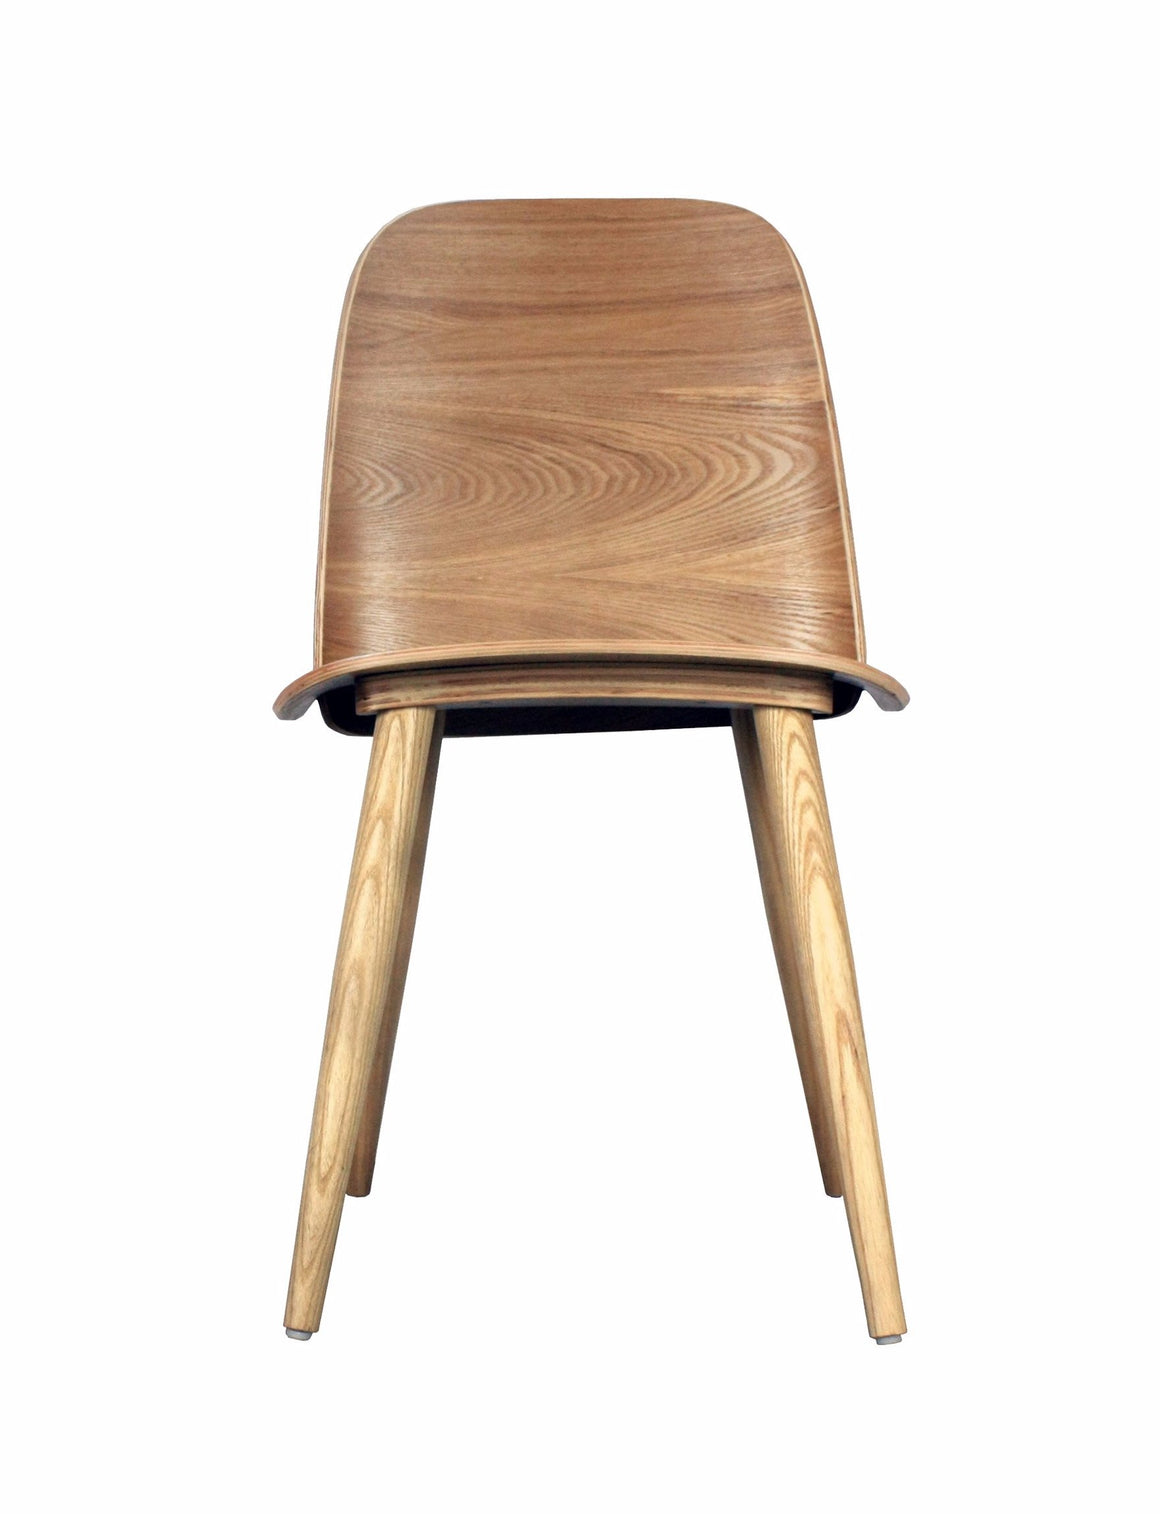 RÅBOW CHAIR